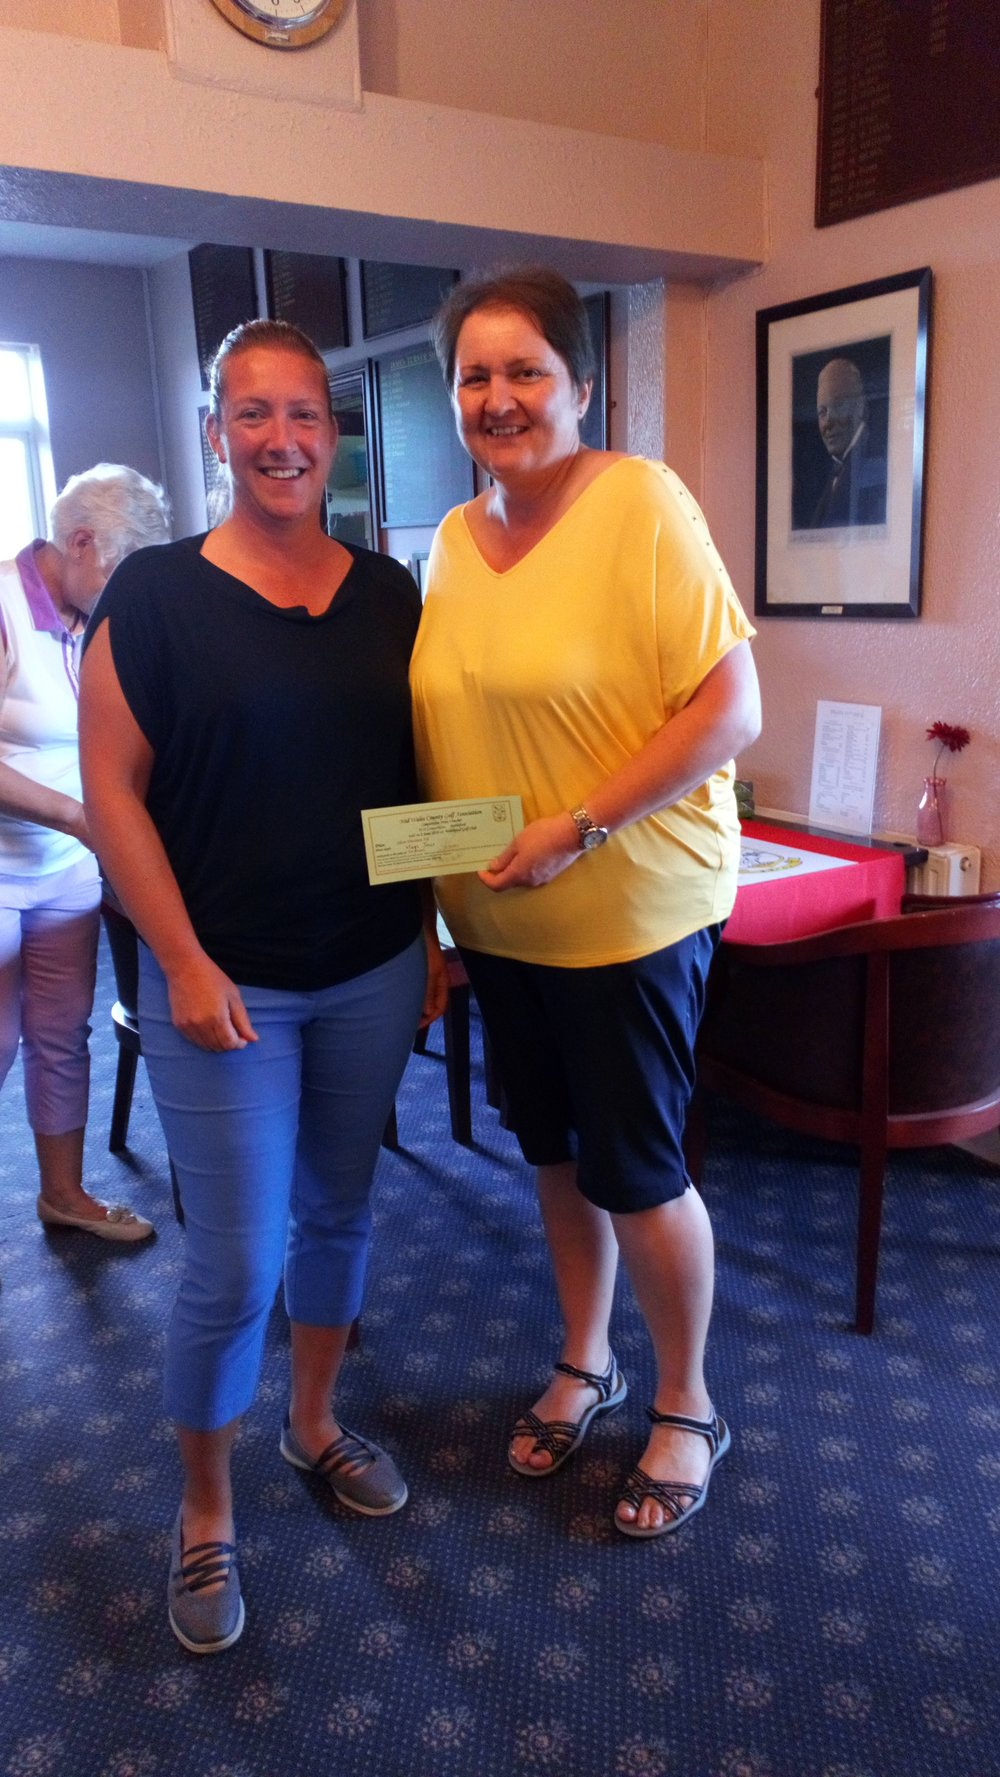 Mags Jones of Cradoc (R), third in the Silver Division, with Ellen Jones of Welshpool. Mags also won nearest the pin, kindly given by Welshpool GC.